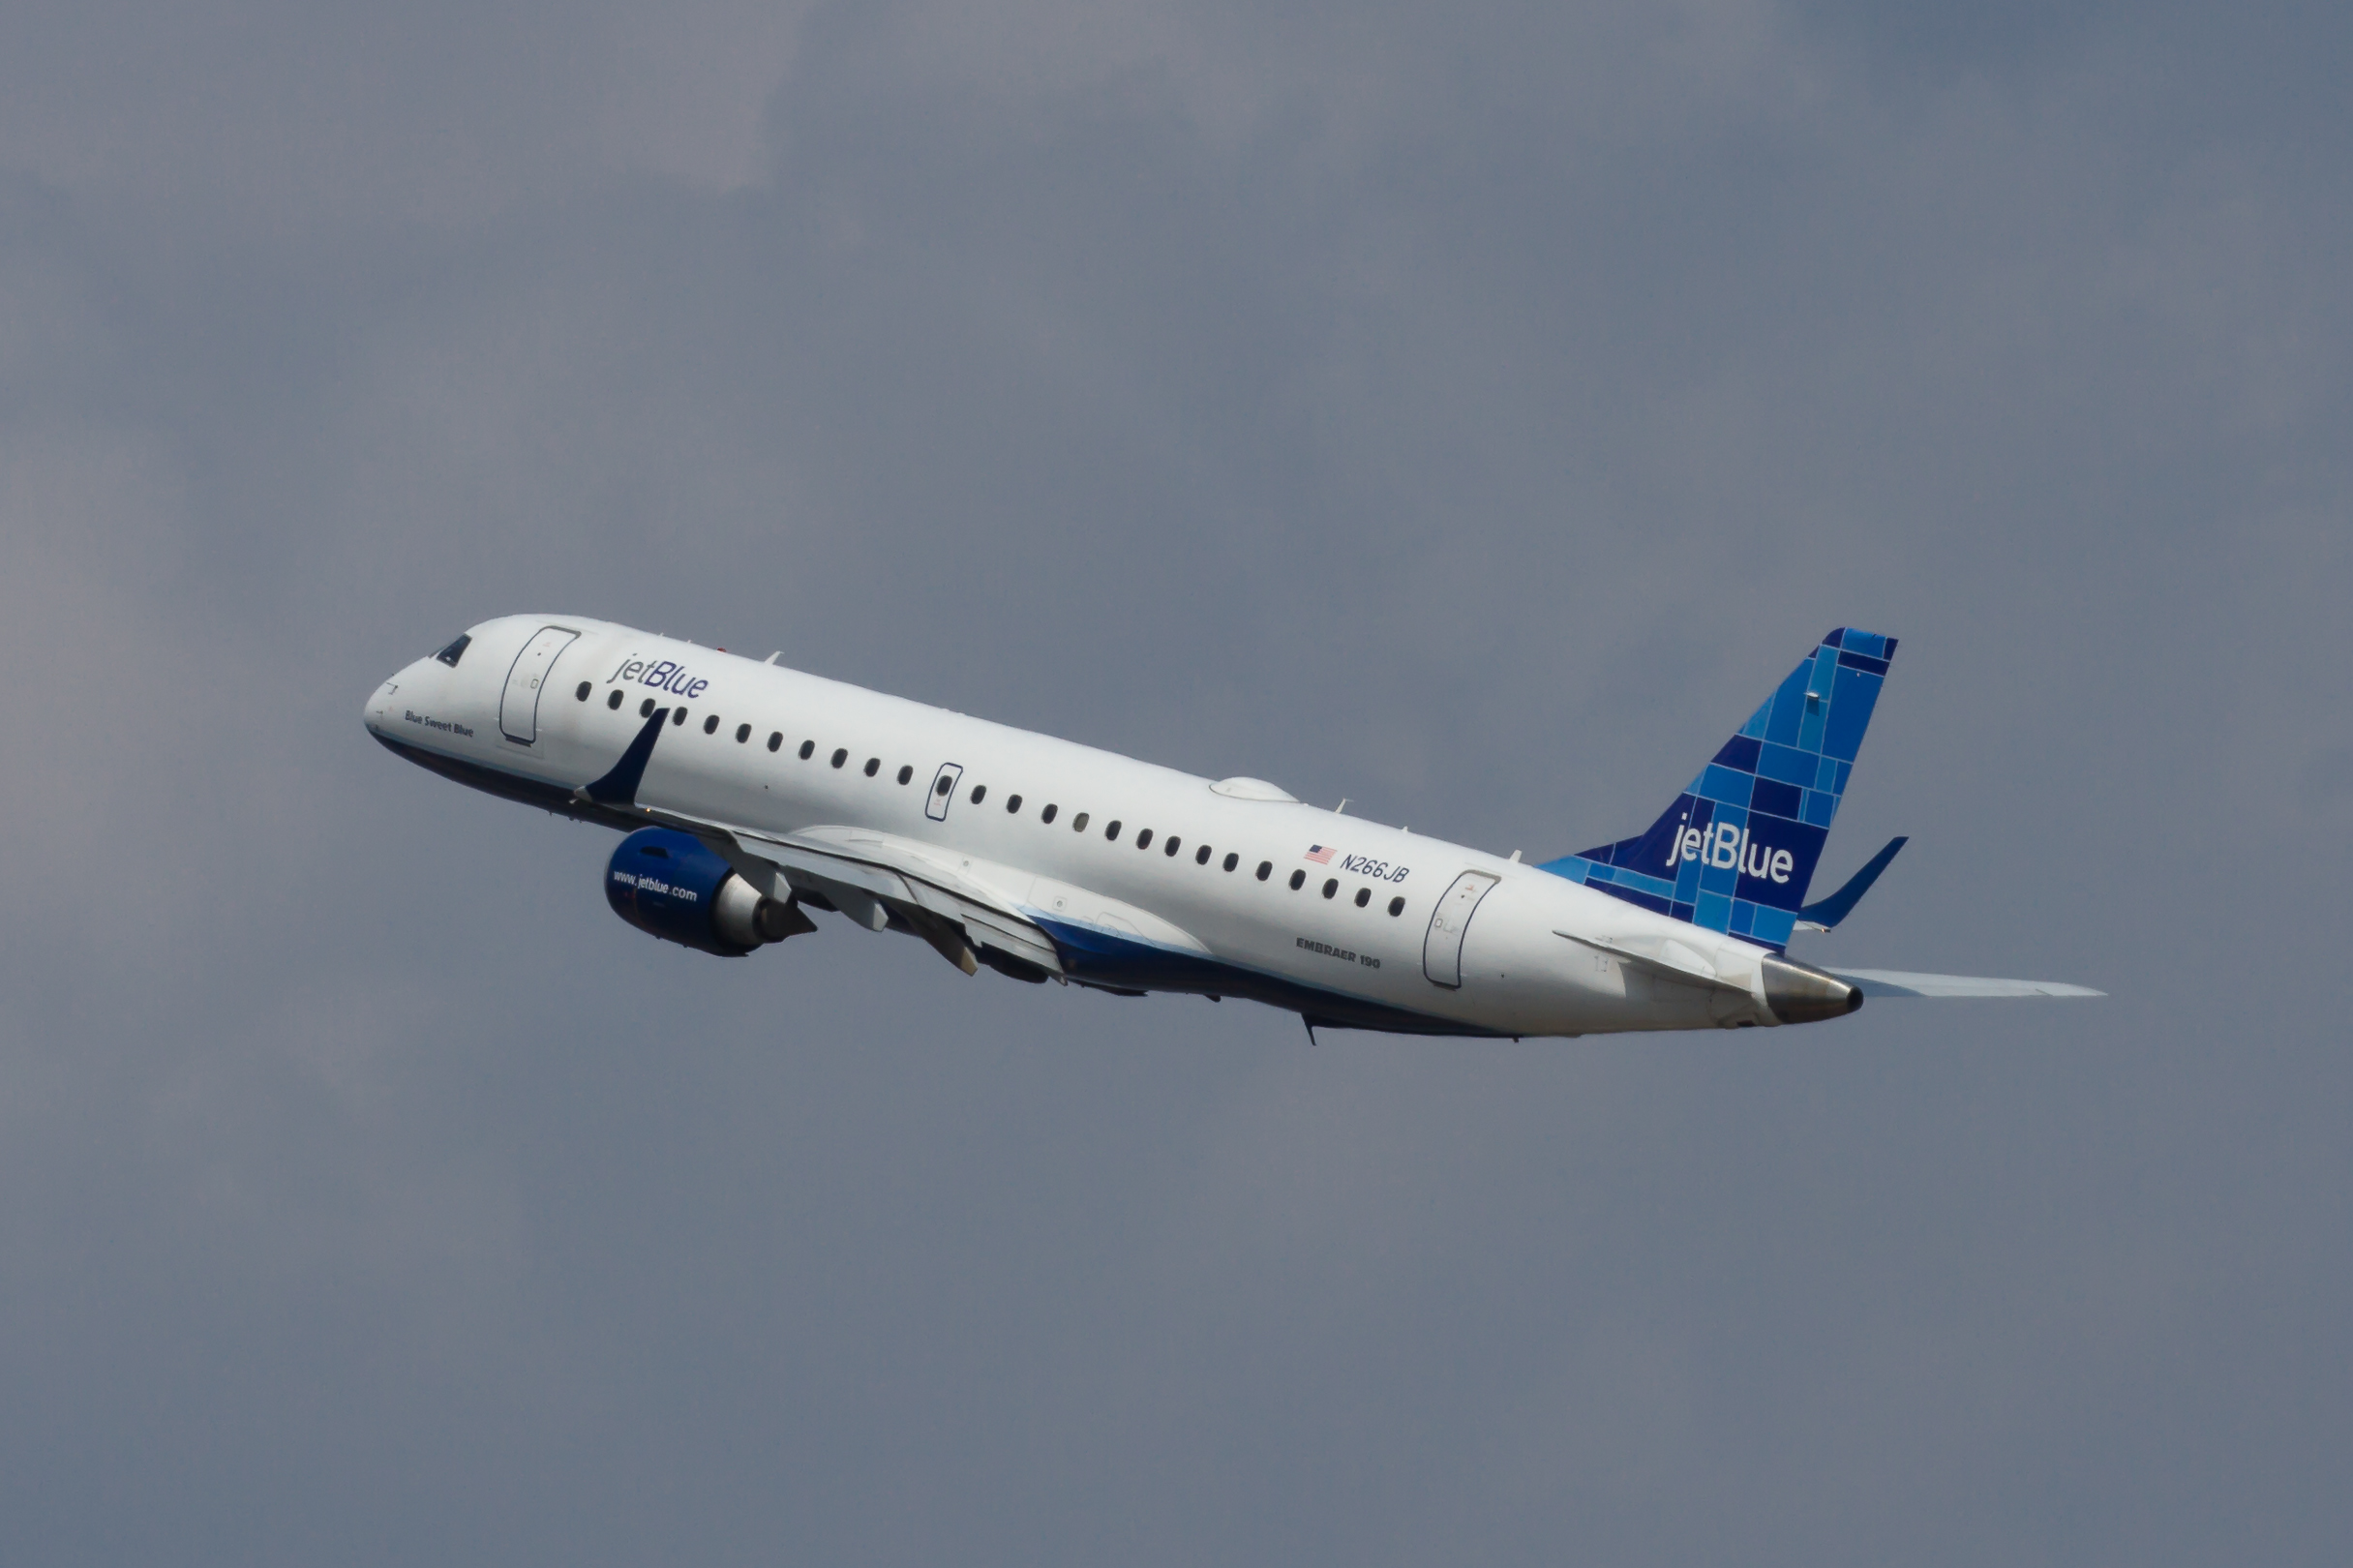 A JetBlue Embraer 190 taking off at Ronald Reagan Washington National  Airport in Washington D.C.